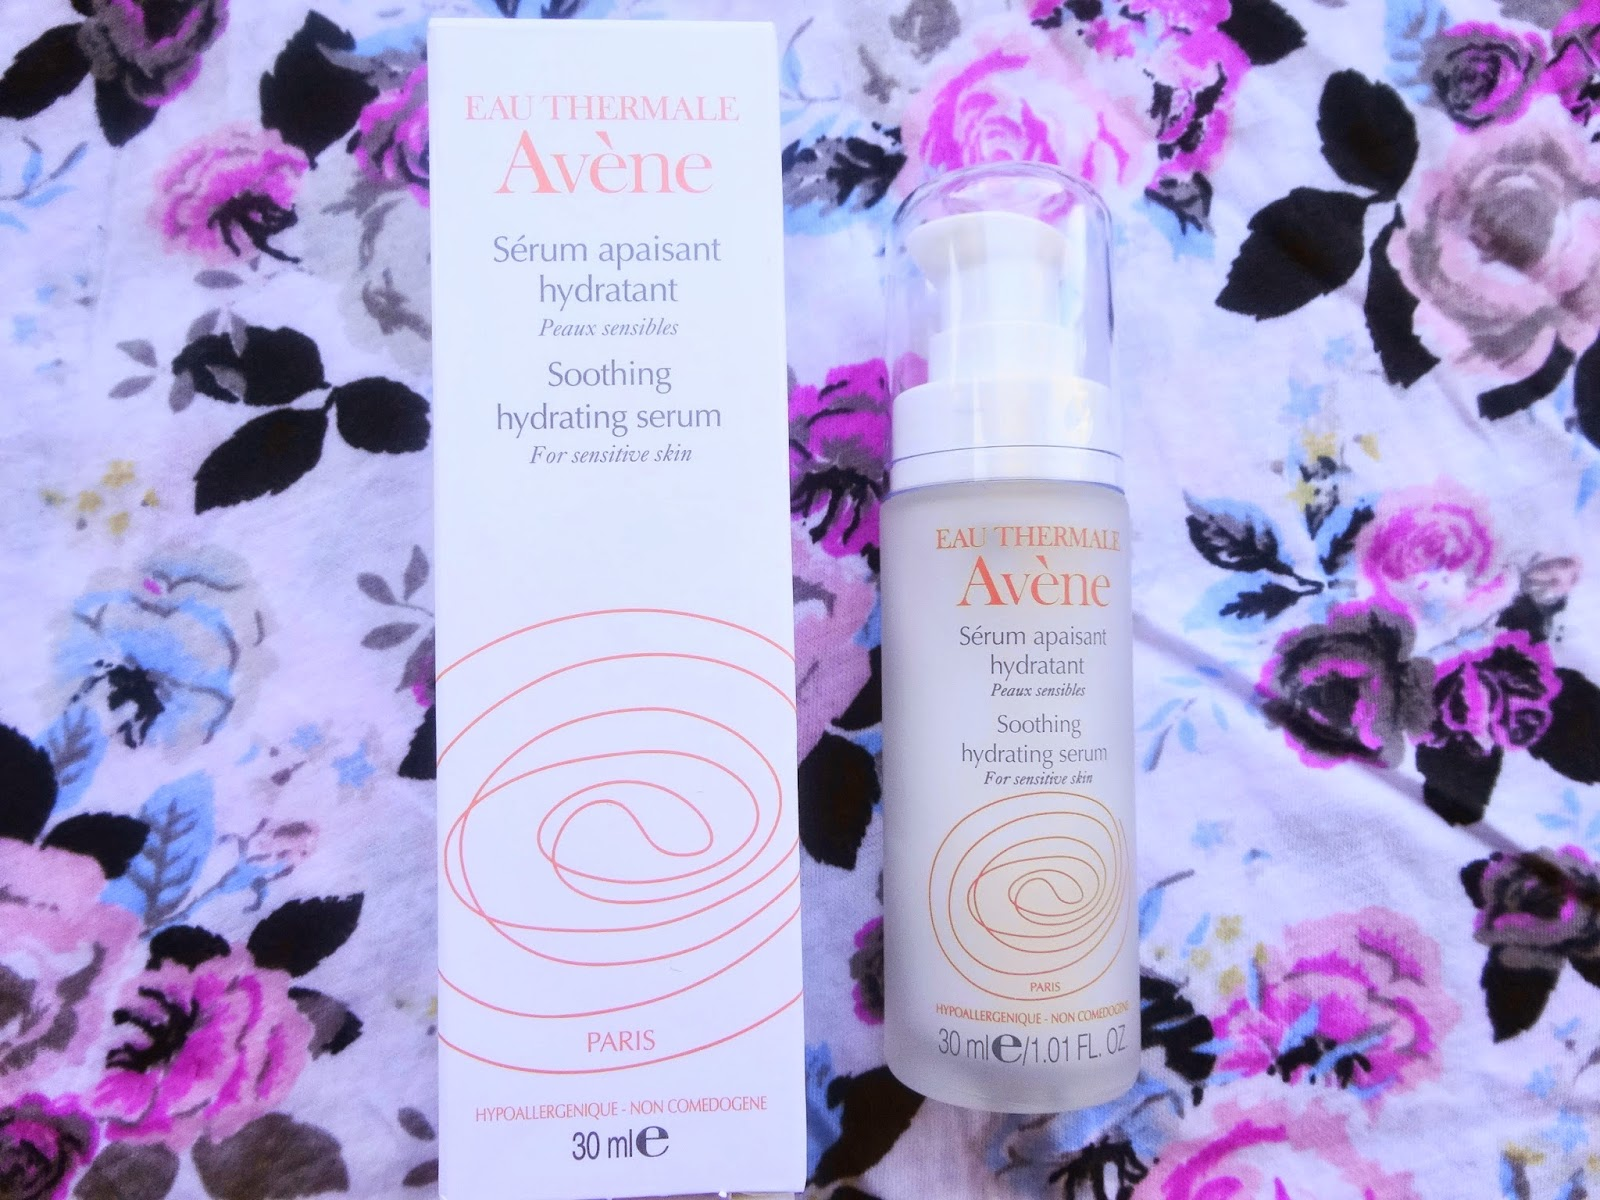 Avene Soothing Hydrating Serum